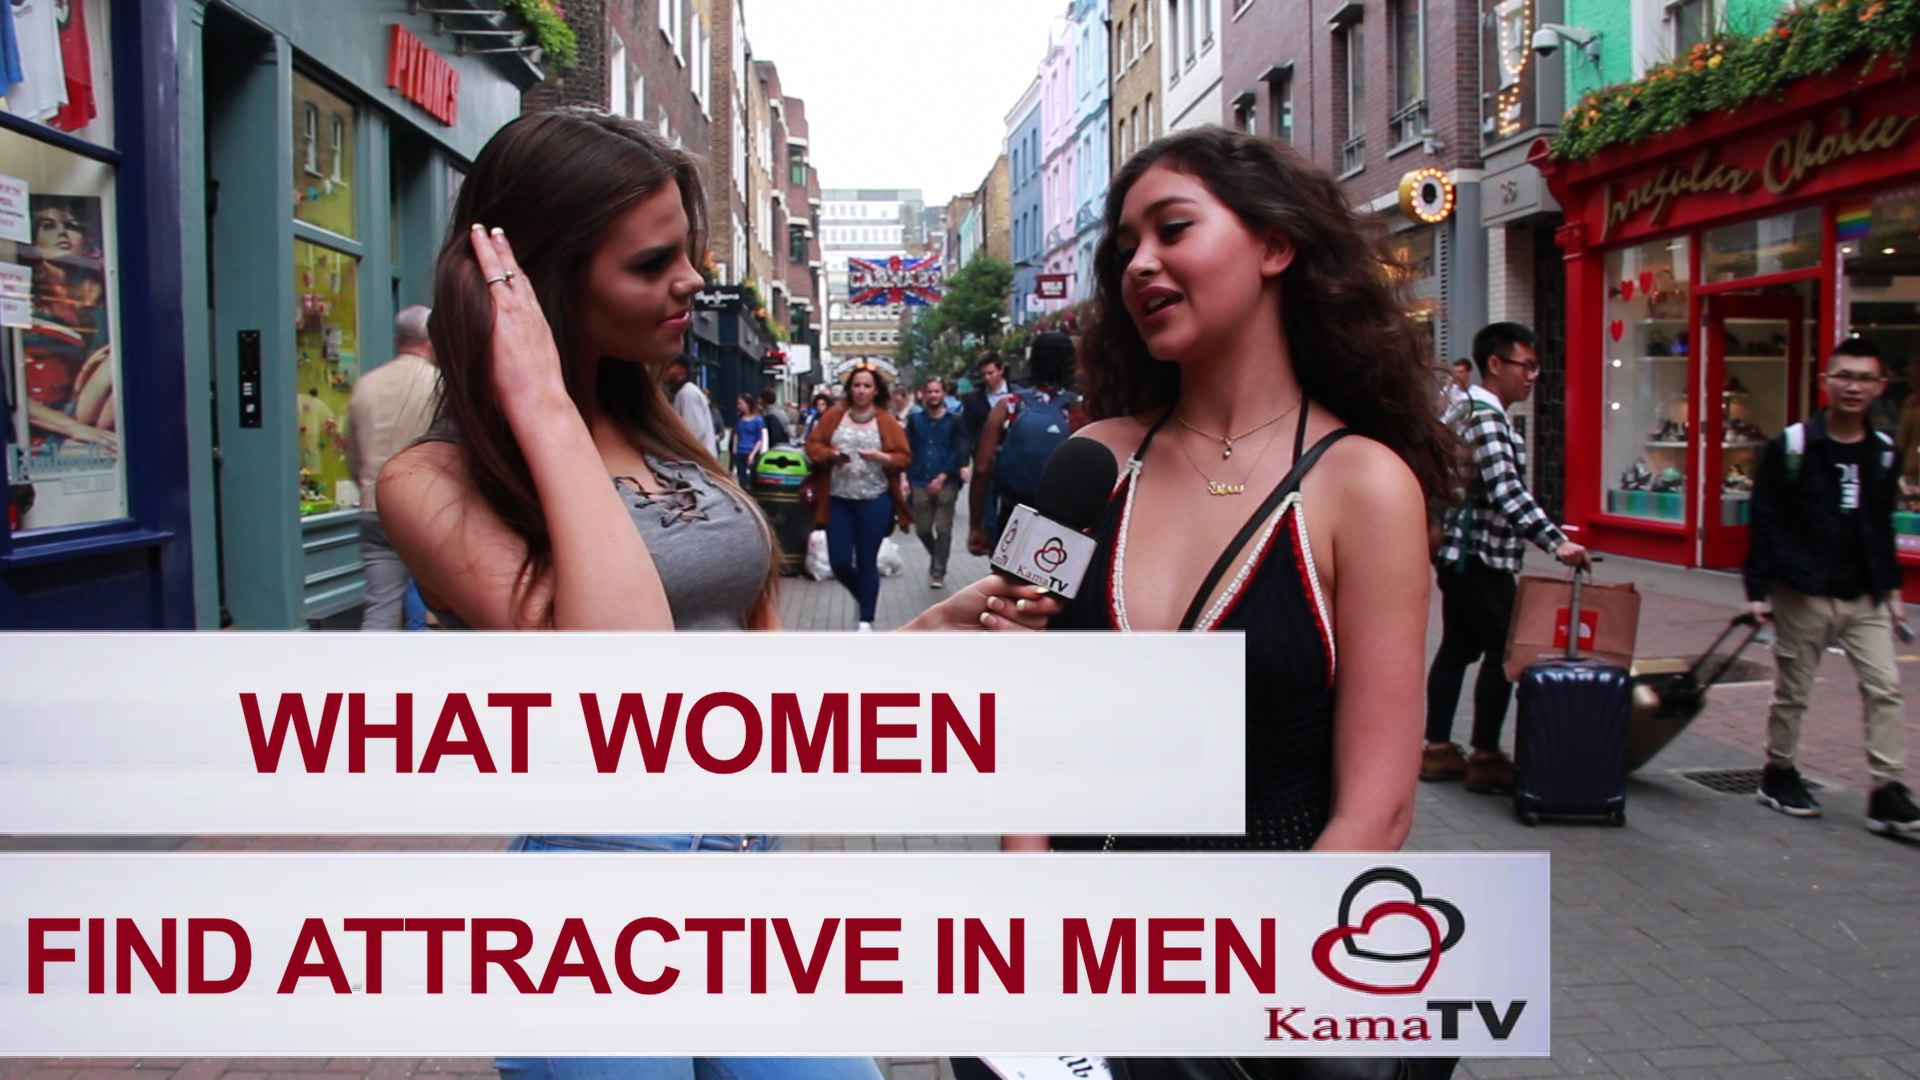 What women find attractive in men